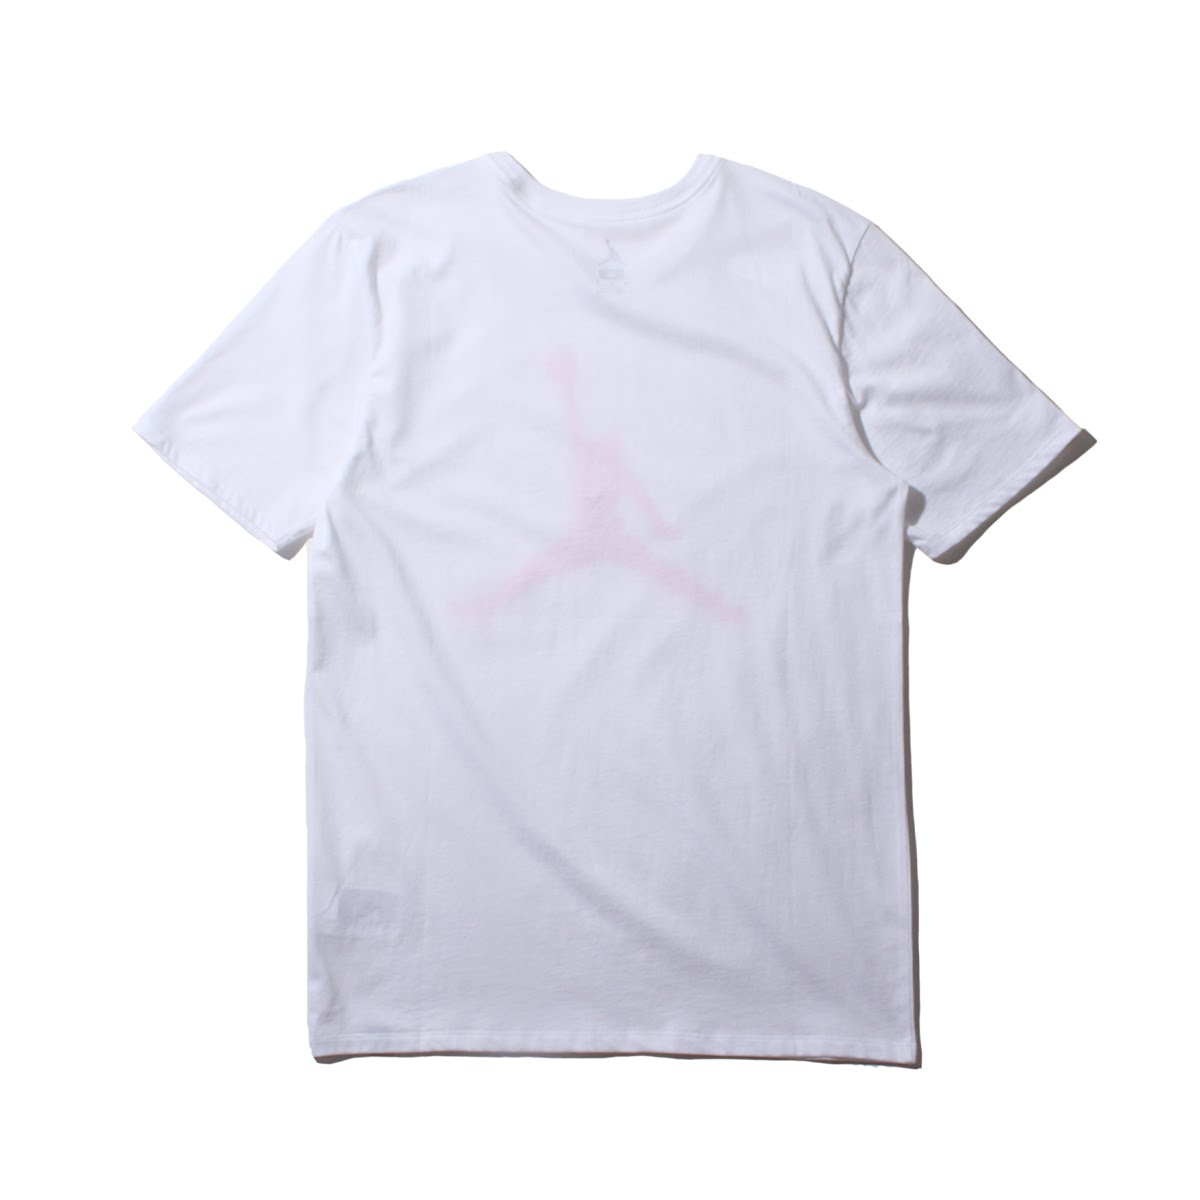 199f6d49a880ea NIKE M JSW TEE ICONIC JUMPMAN (Nike Jordan icon logo S S T-shirt) WHITE INFRARED  23 18SU-I